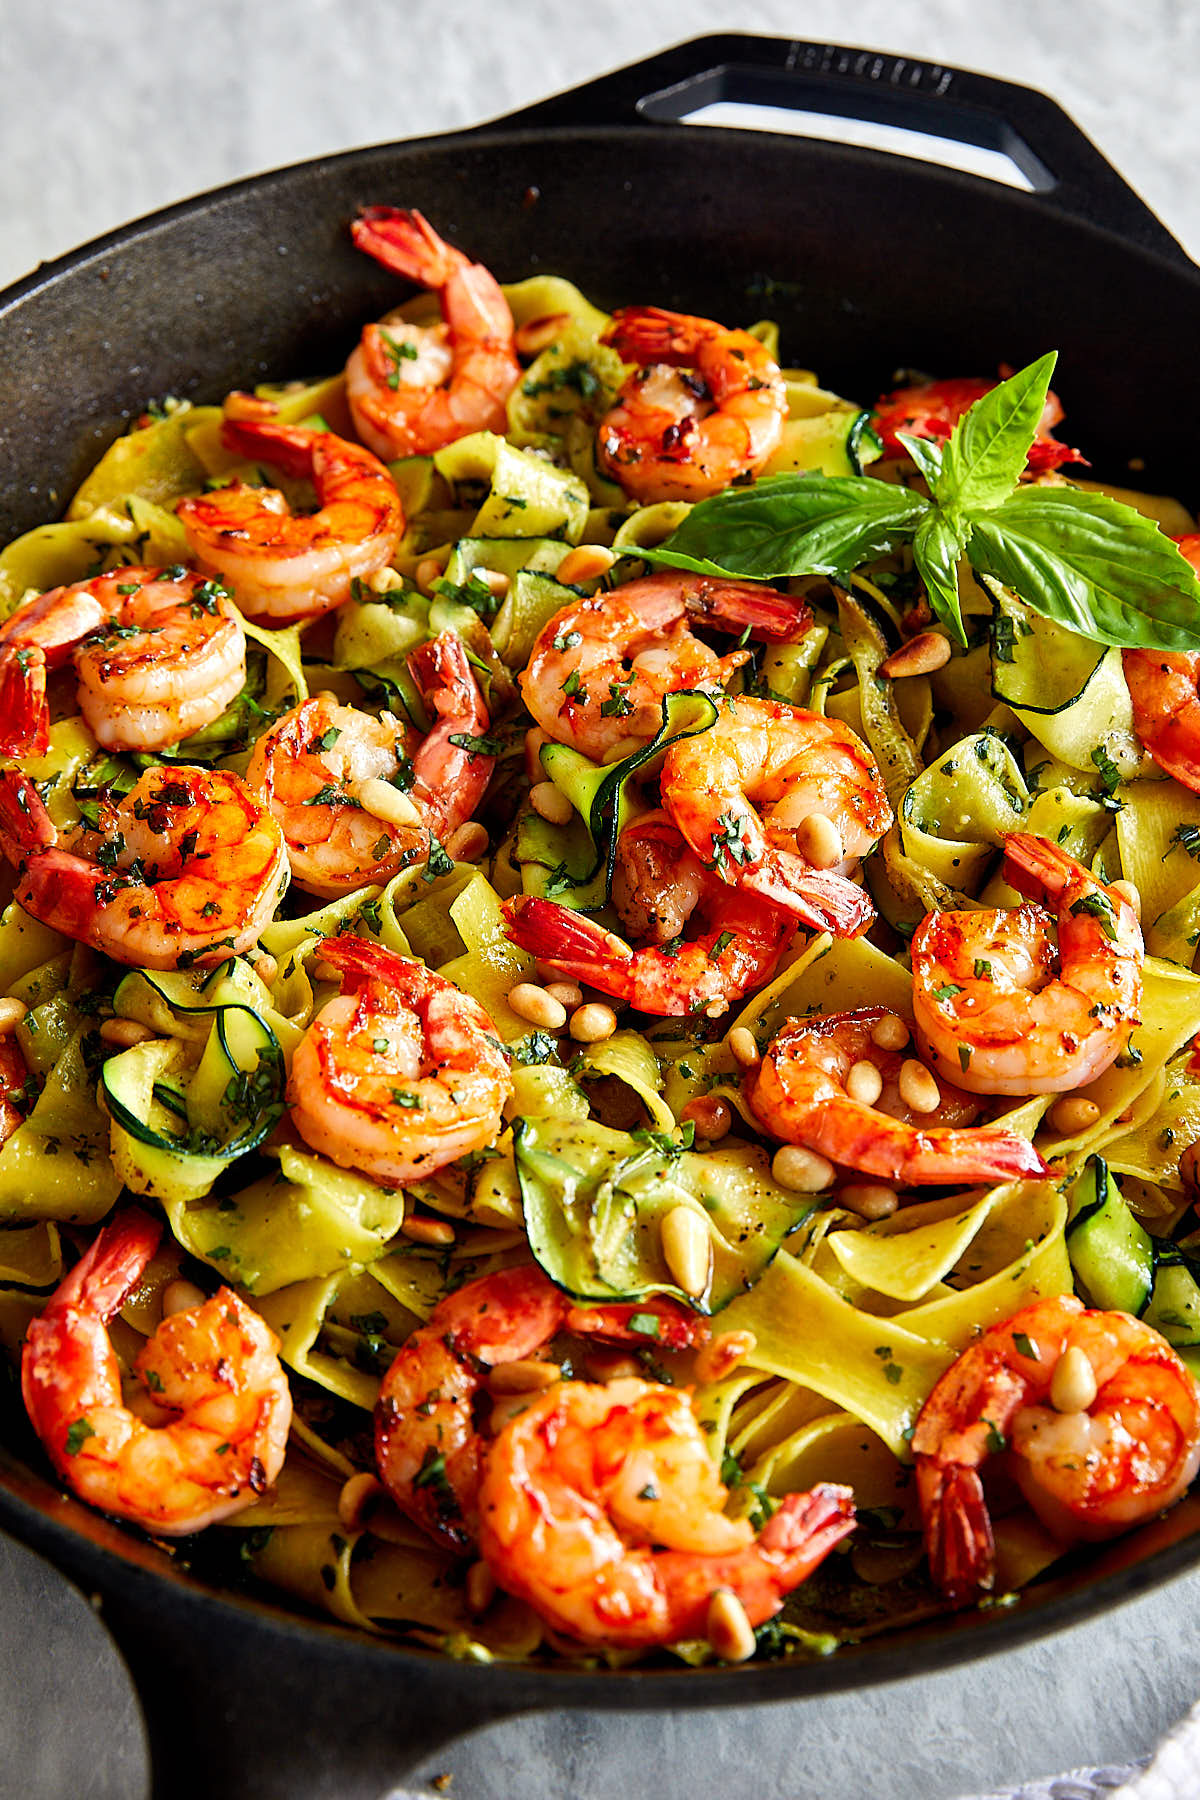 Homemade pesto shrimp pasta made quickly and easily, a great recipe for a busy weekday dinner. | ifoodblogger.com #dinner #dinnerrecipes #easyrecipes #pastarecipes #shrimp #shrimprecipes